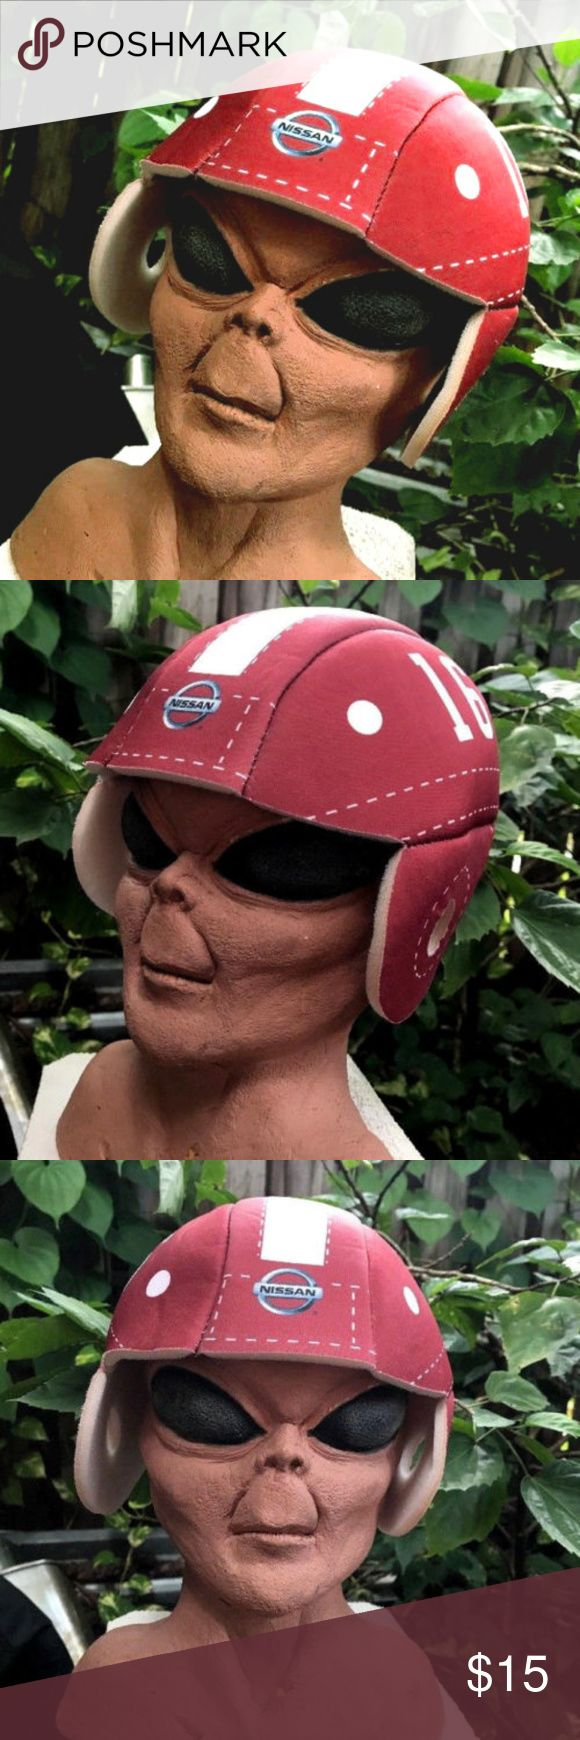 Nissan FSU Football Helmet Heisman Trophy Weinke Very rare novelty PROMO foam NCAA football helmet for Heisman Trophy winner Chris Weinke, #16 for FSU, awarded in 2000. Never worn (I mean, except for when my alien friend was modeling it for this listing!)  All foam helmet well put together, fully stitched and ready for the next football party or pep rally!  Has #16 on the side, stripe down the middle, Nissan logo in the front and Heisman info on the left side. A hard-to-find Seminoles…